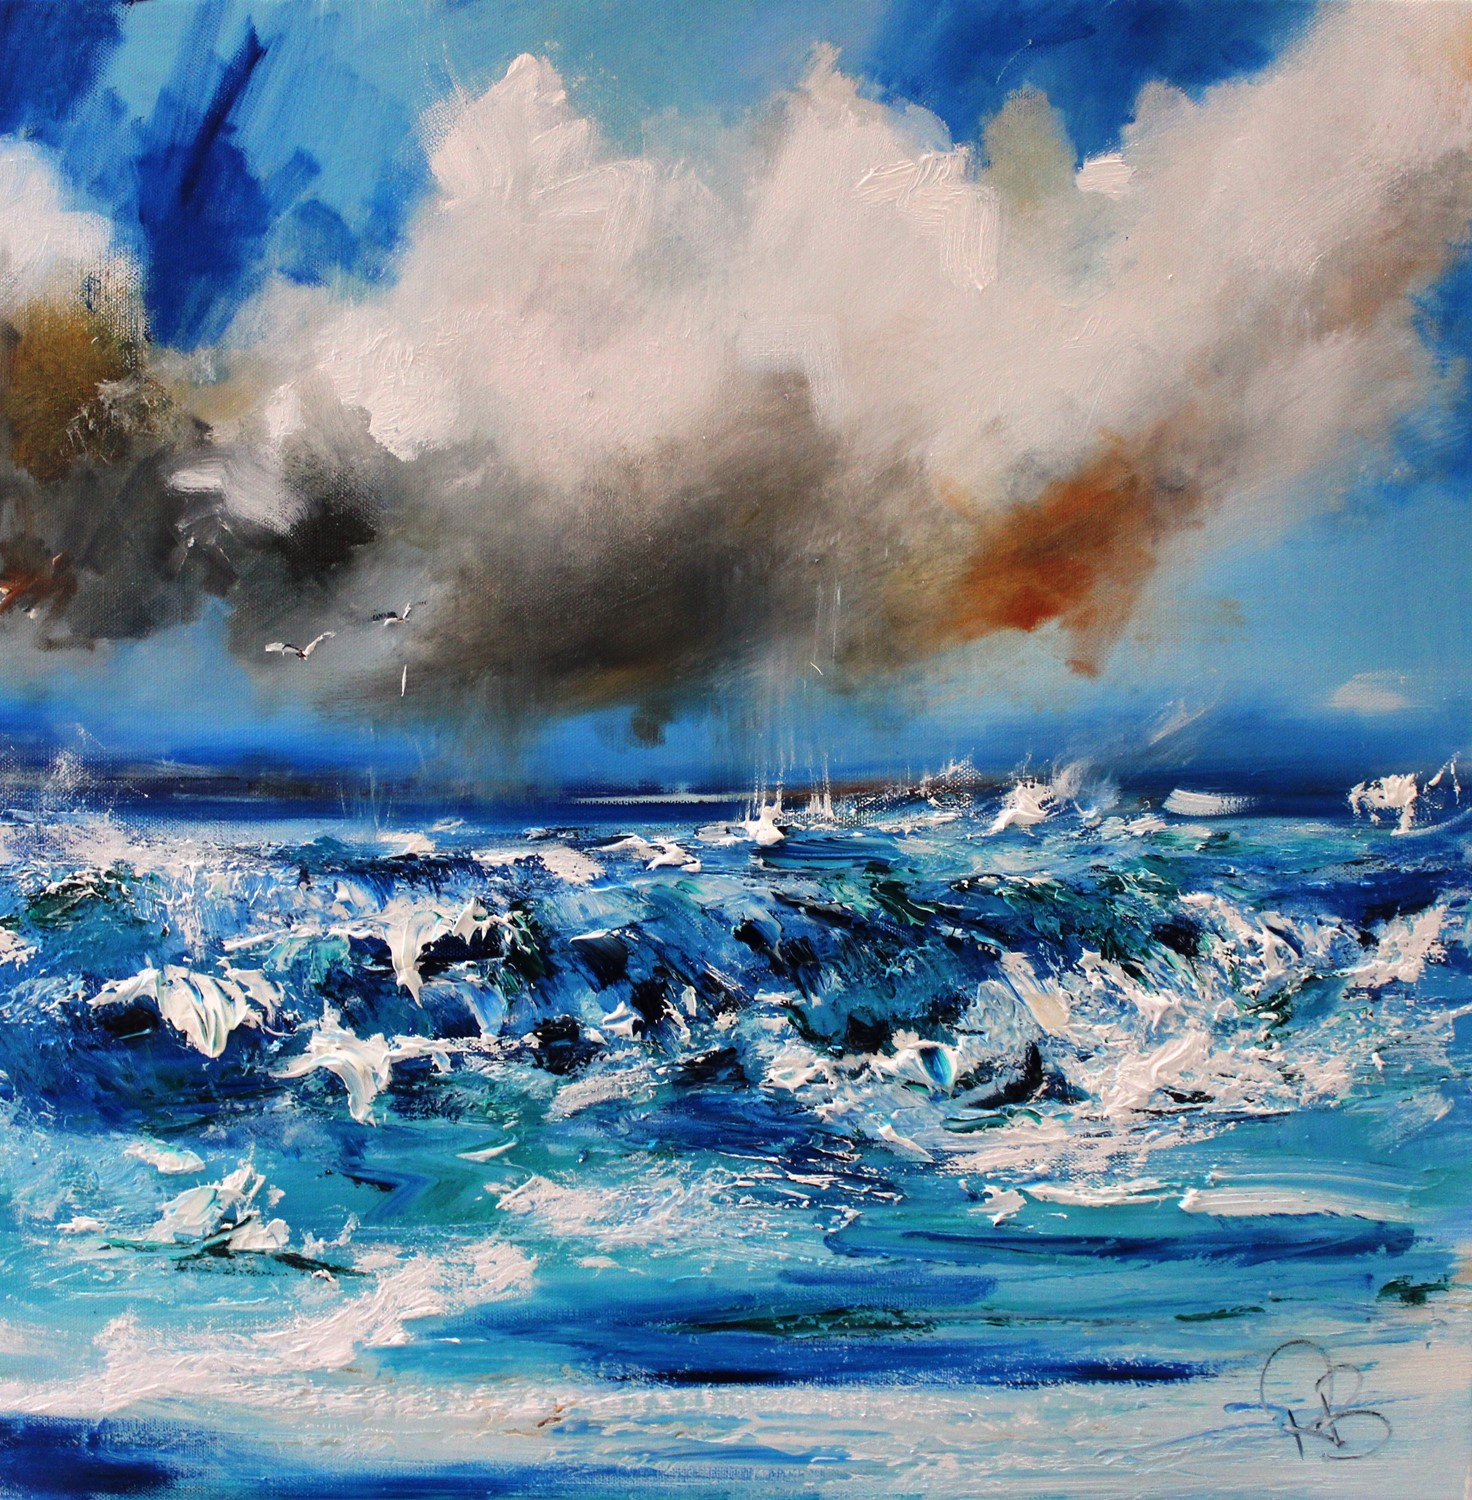 'Gulls and Sea Spray' by artist Rosanne Barr